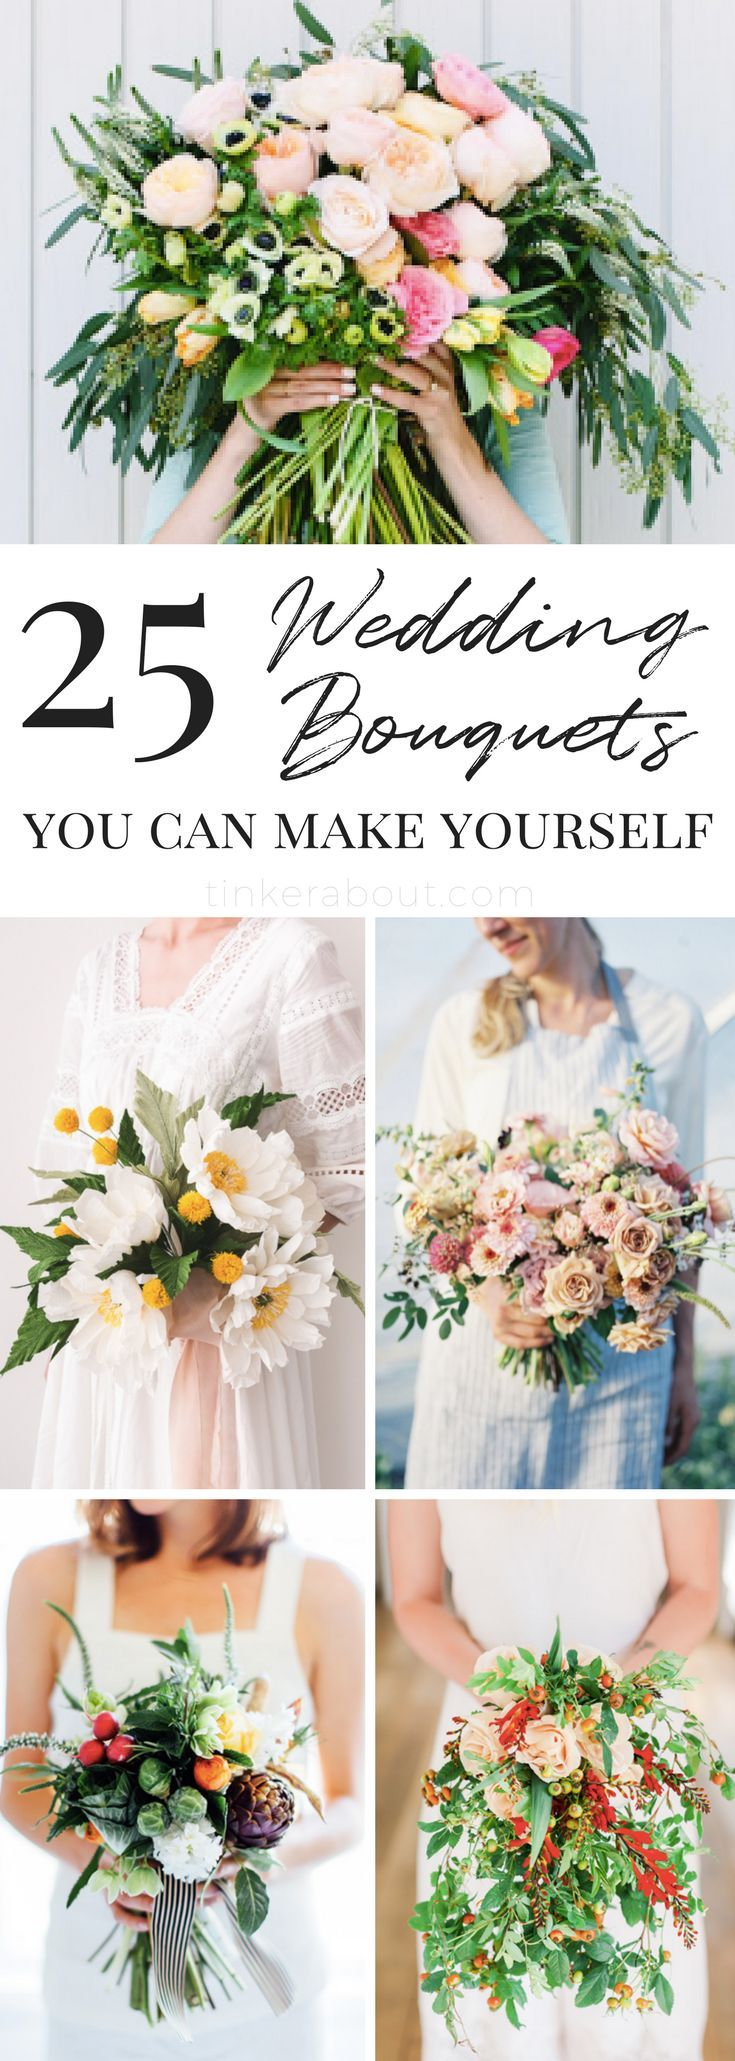 Wedding decorations to make yourself   BudgetFriendly DIY Wedding Bouquets with Tutorials  Diy wedding